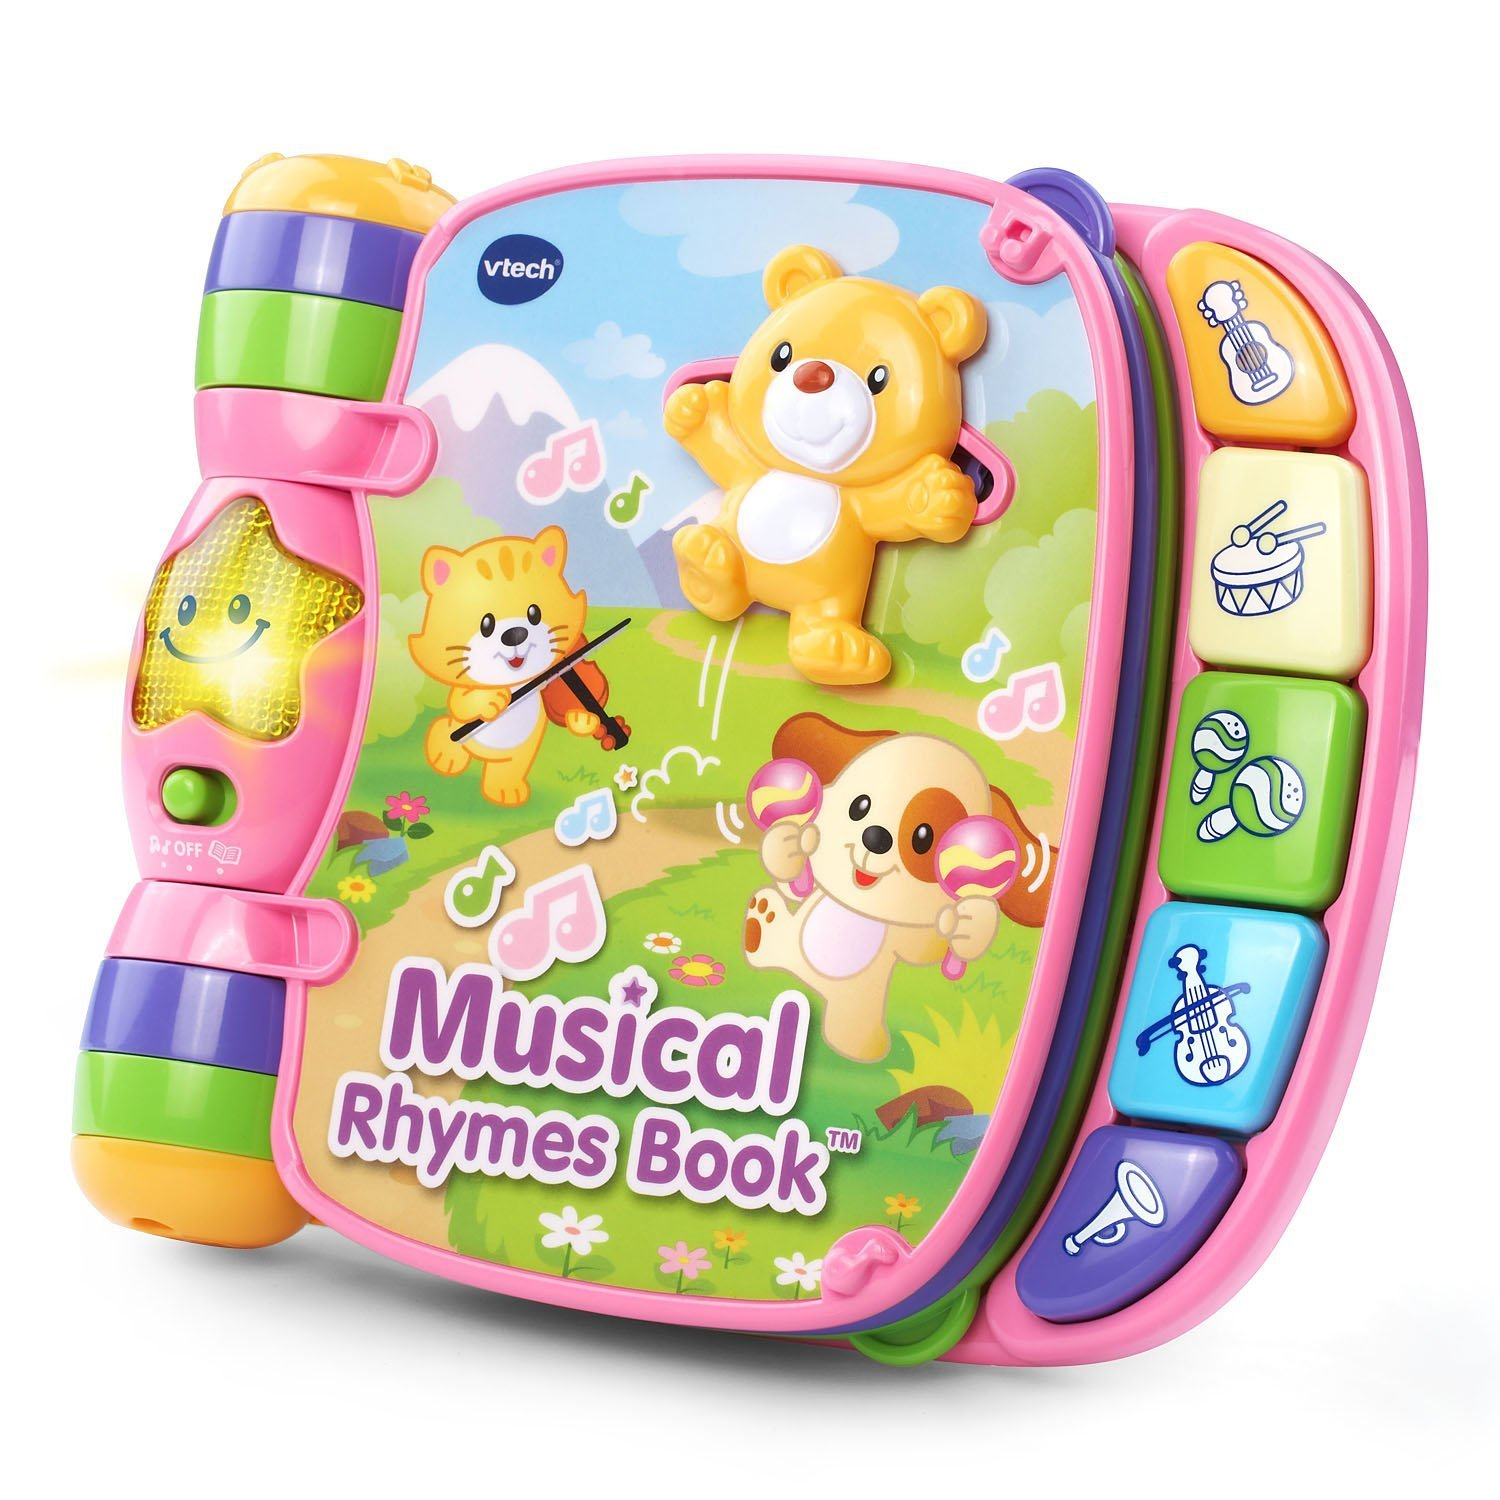 Learning toys - baby toys - toddler toys - kids toys - Musical Rhymes Book - girls toys - boy toy - toys for girls - toys for kids - baby toy